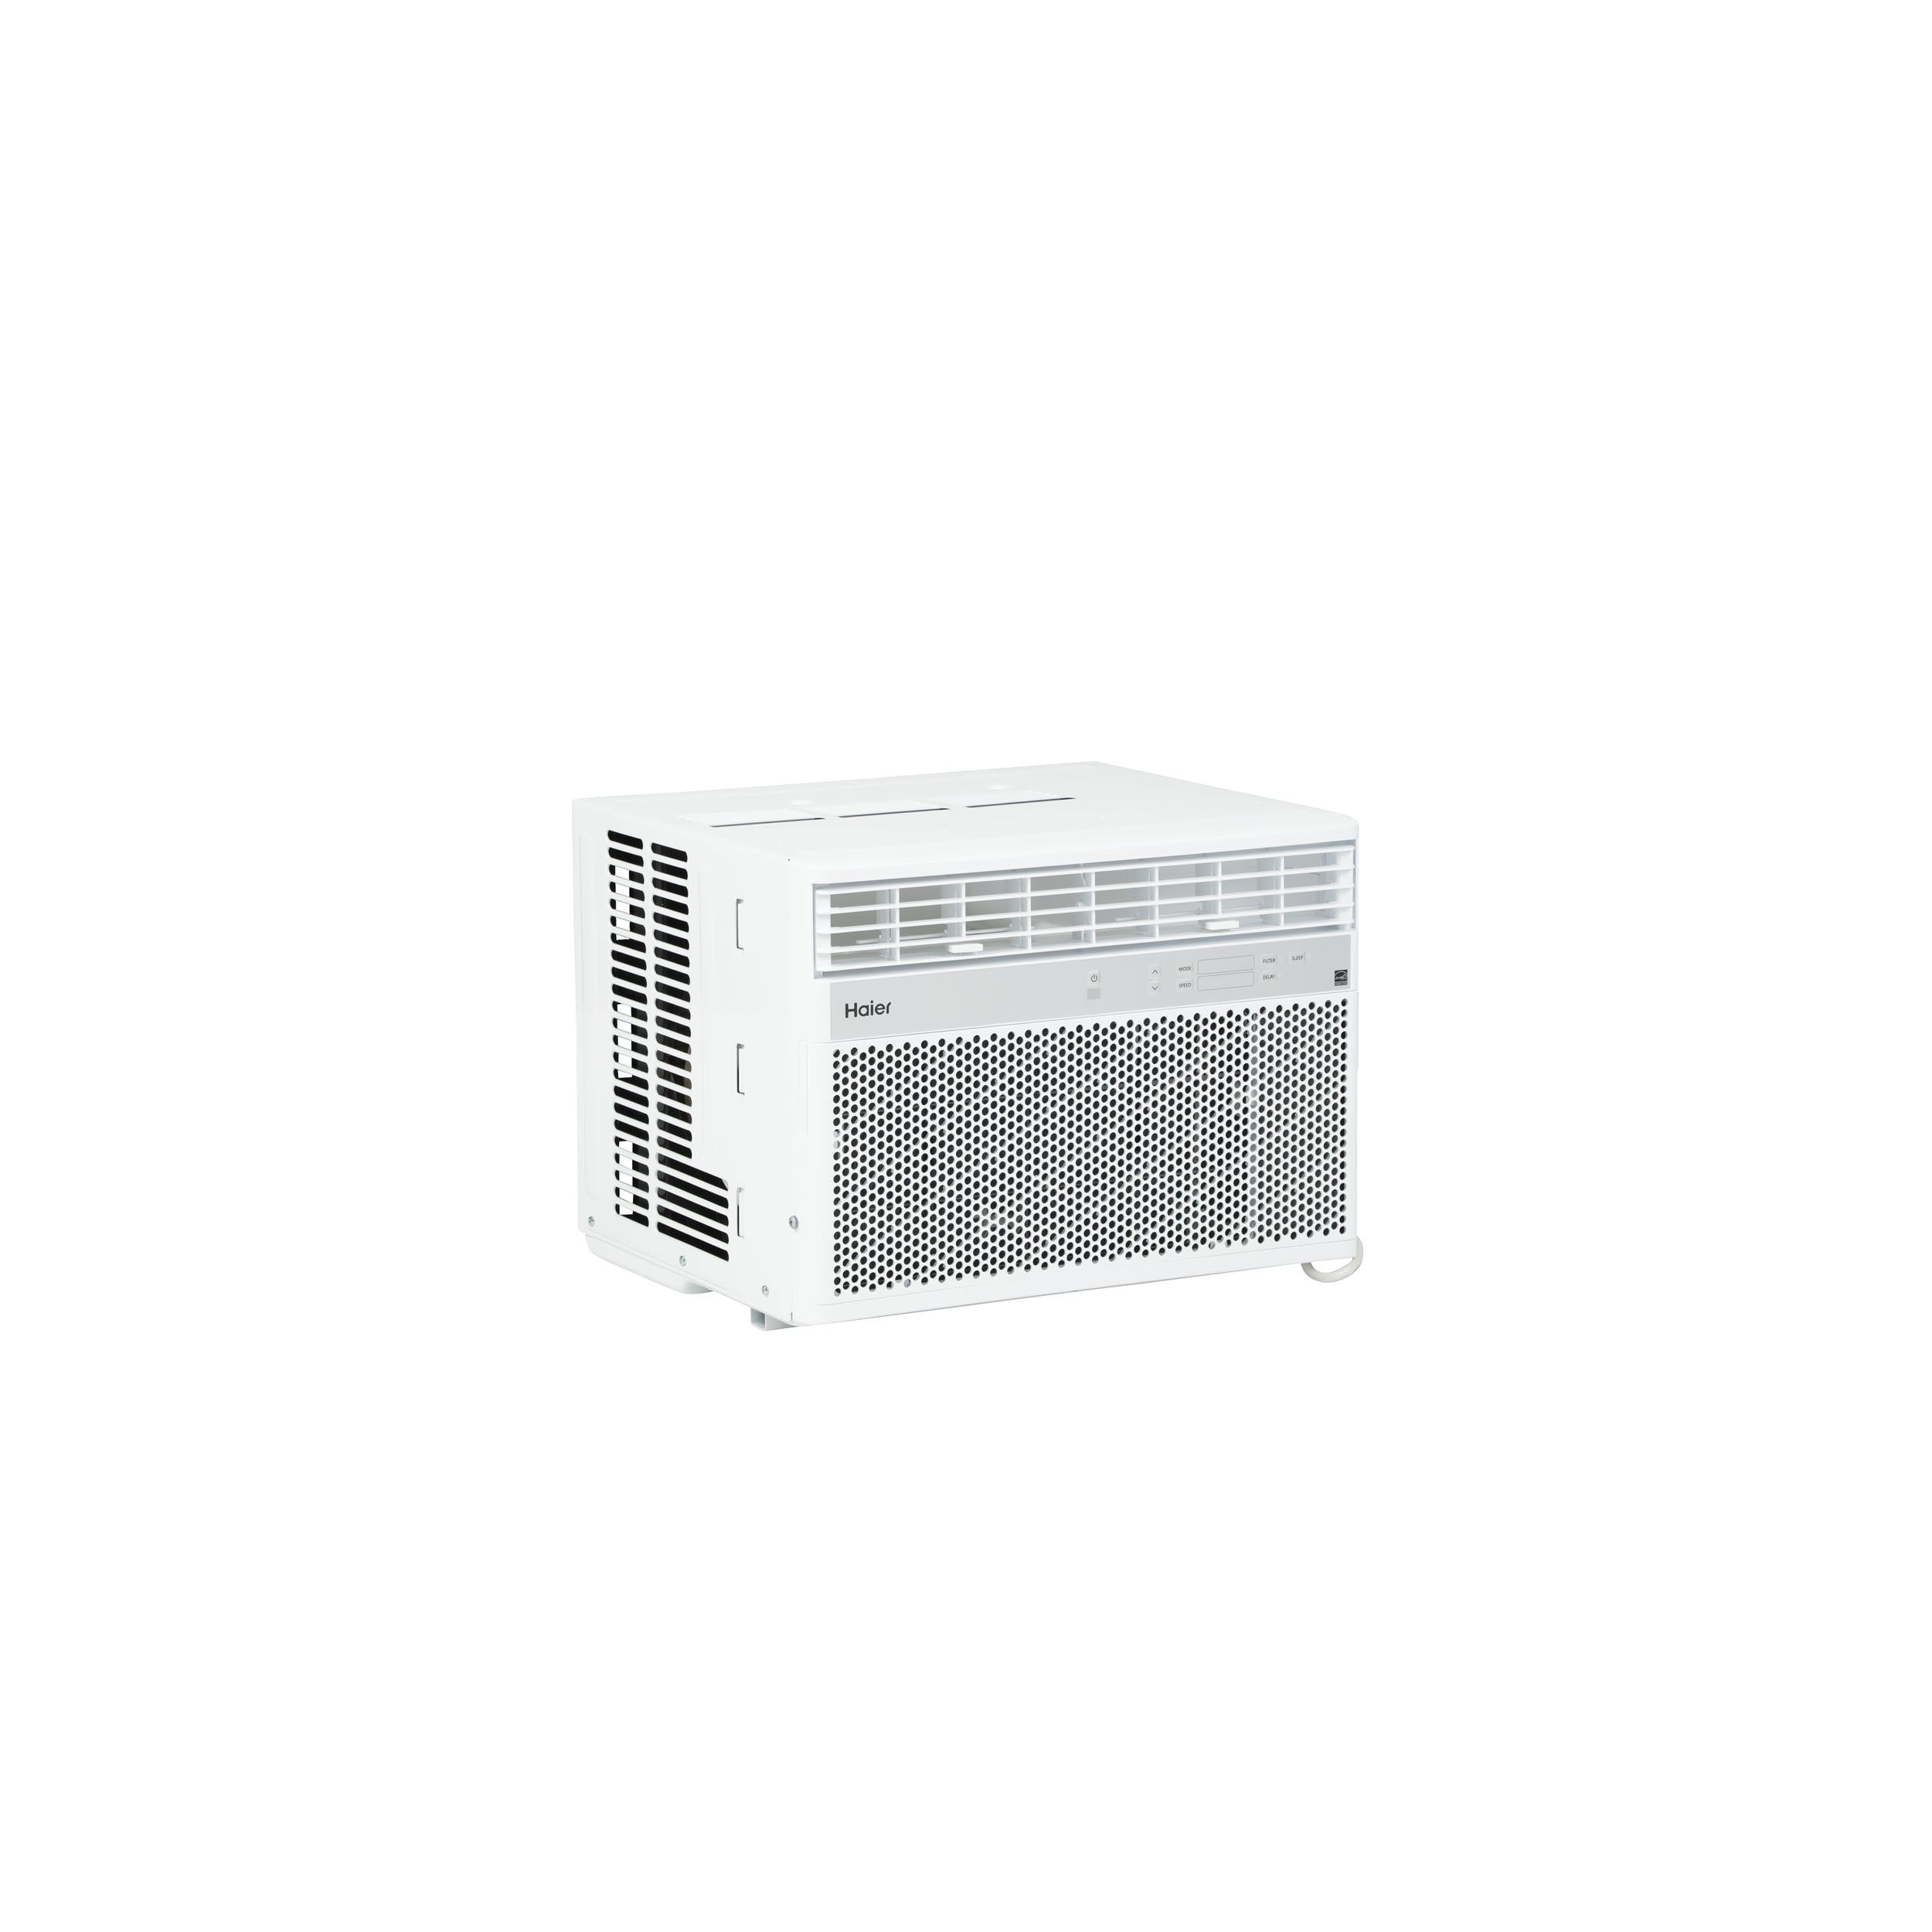 Model: QHM15AX | ENERGY STAR® 115 Volt Electronic Room Air Conditioner